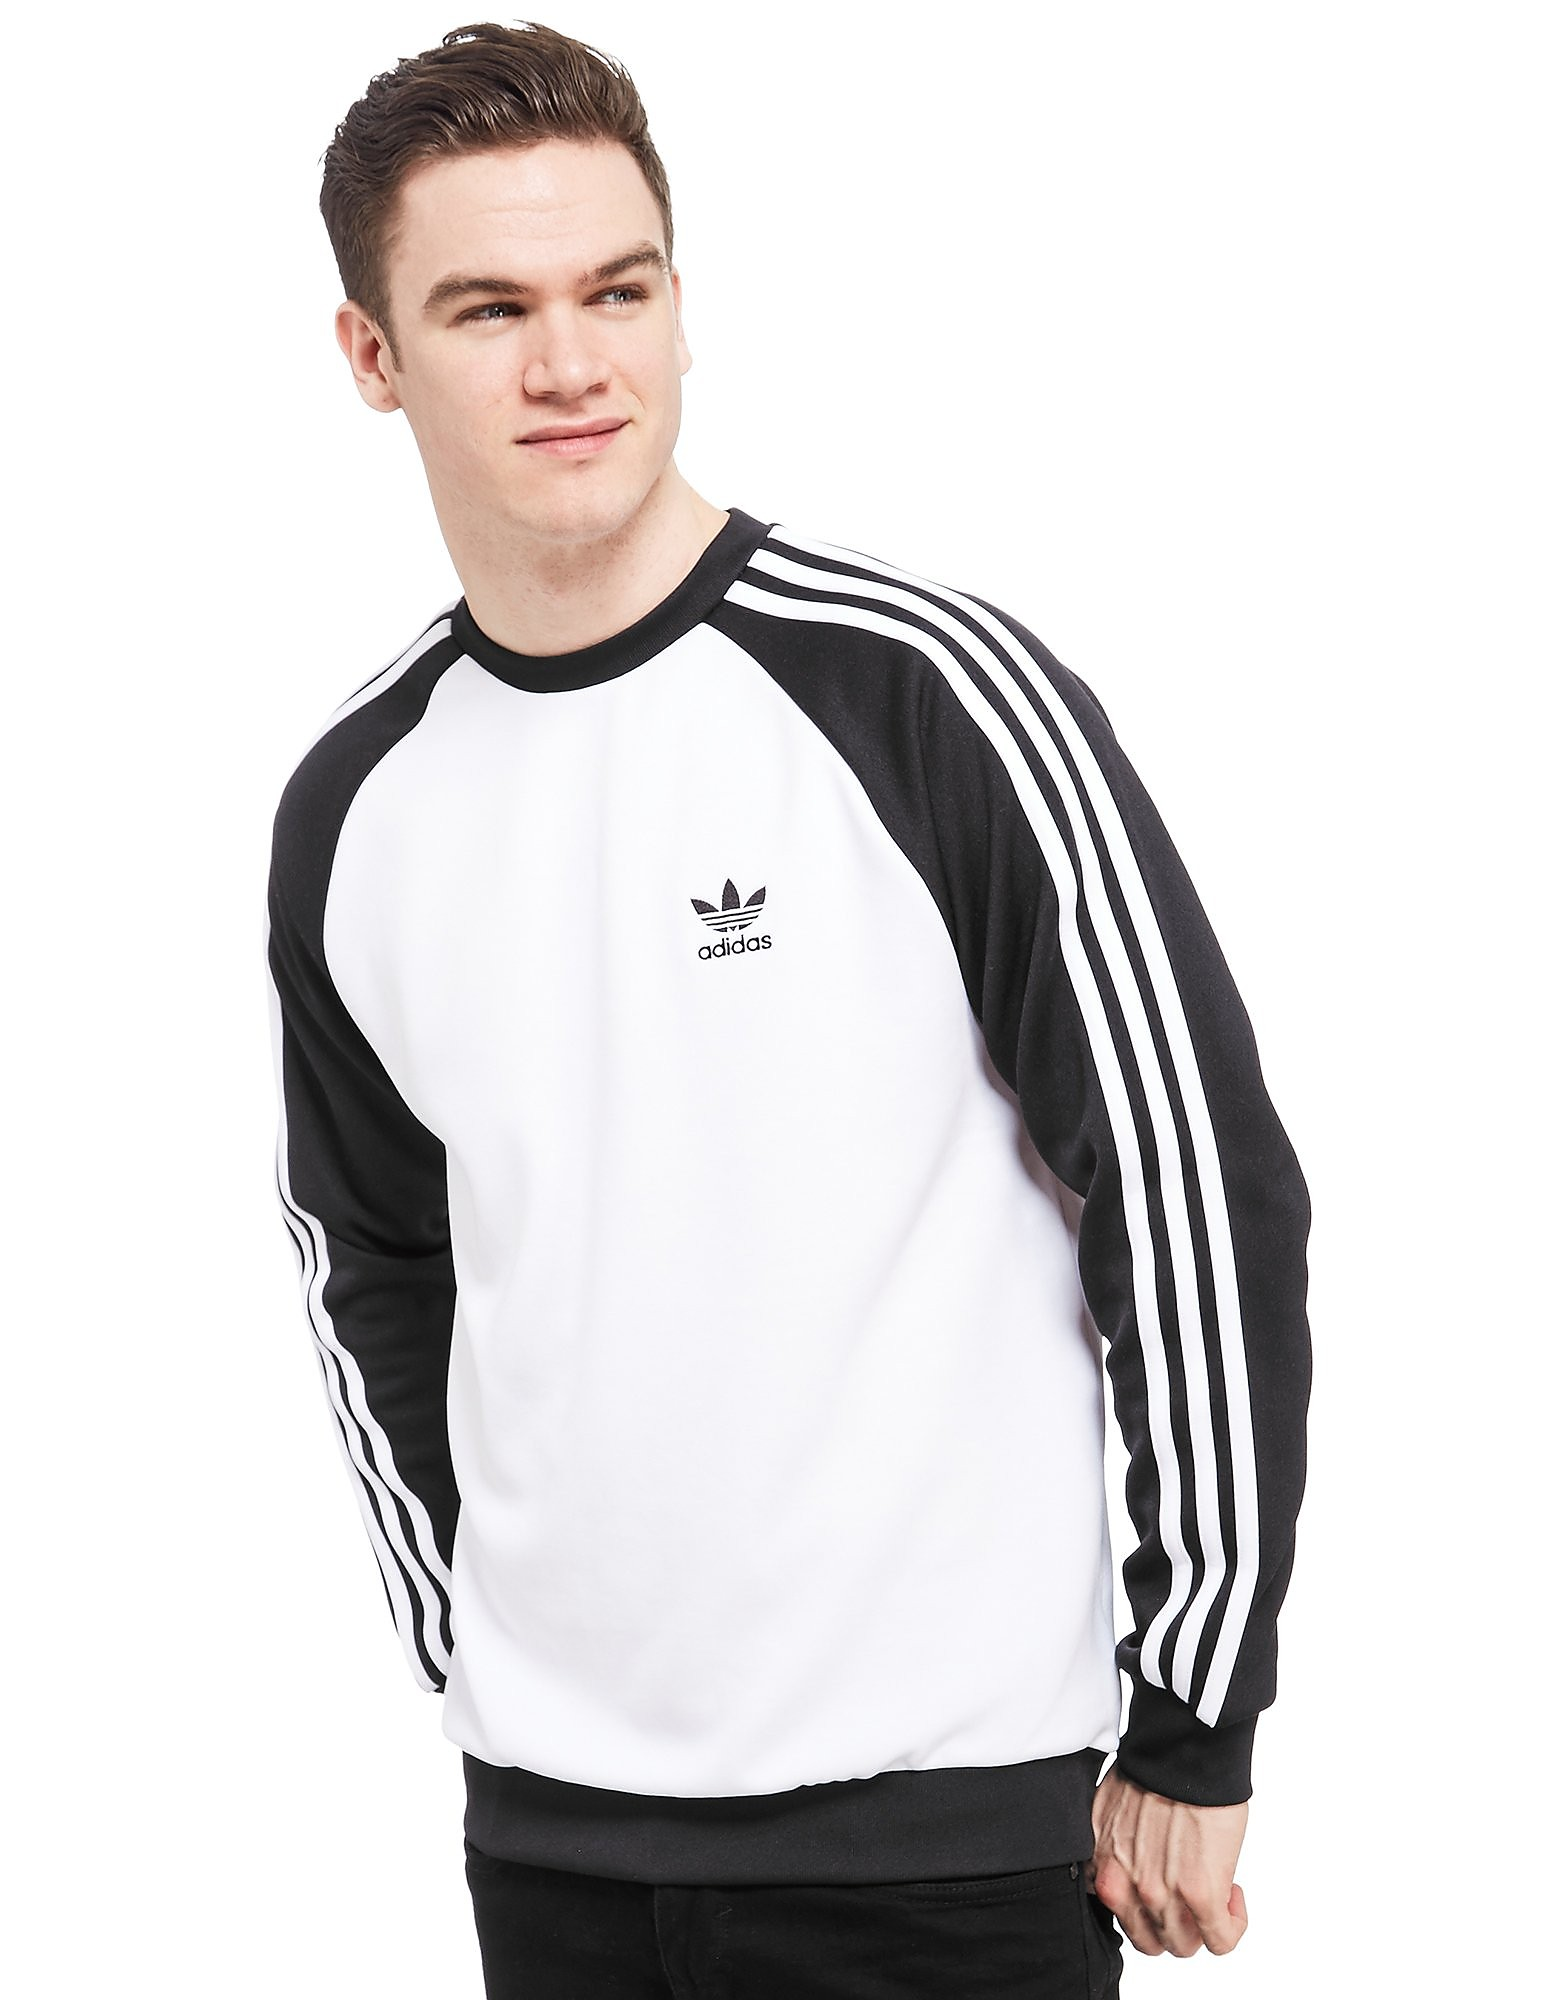 adidas Superstar Sweat Top